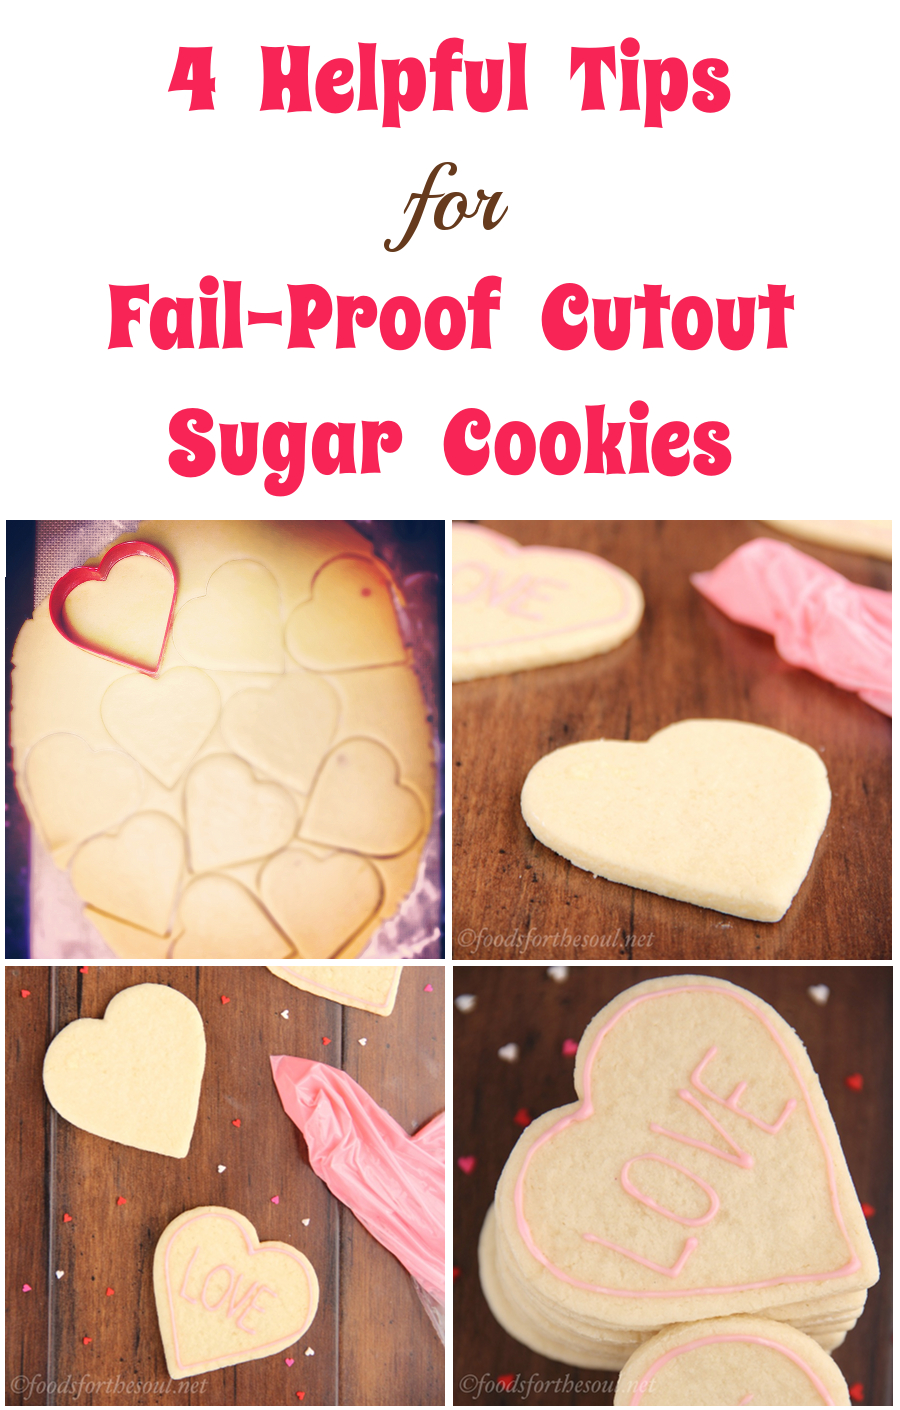 4 Helpful Tips for Fail-Proof Cutout Sugar Cookies. You'll make perfect cookies every time!